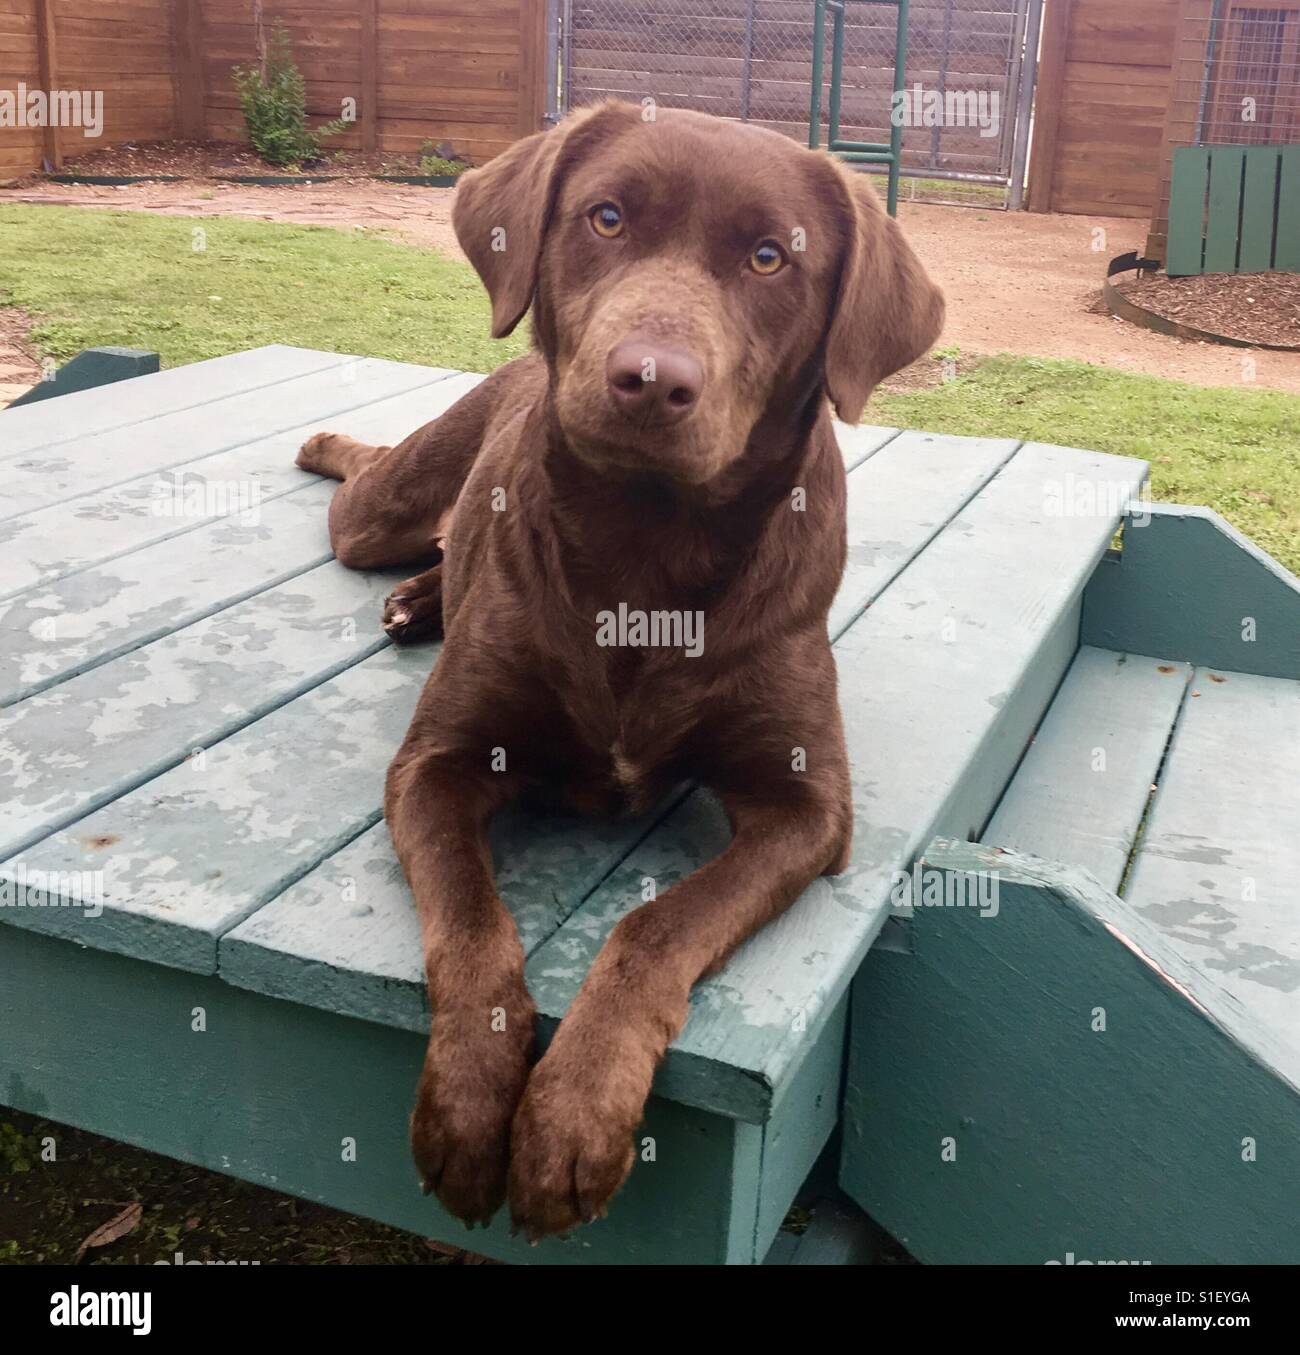 Brown Labrador Dog High Resolution Stock Photography And Images Alamy